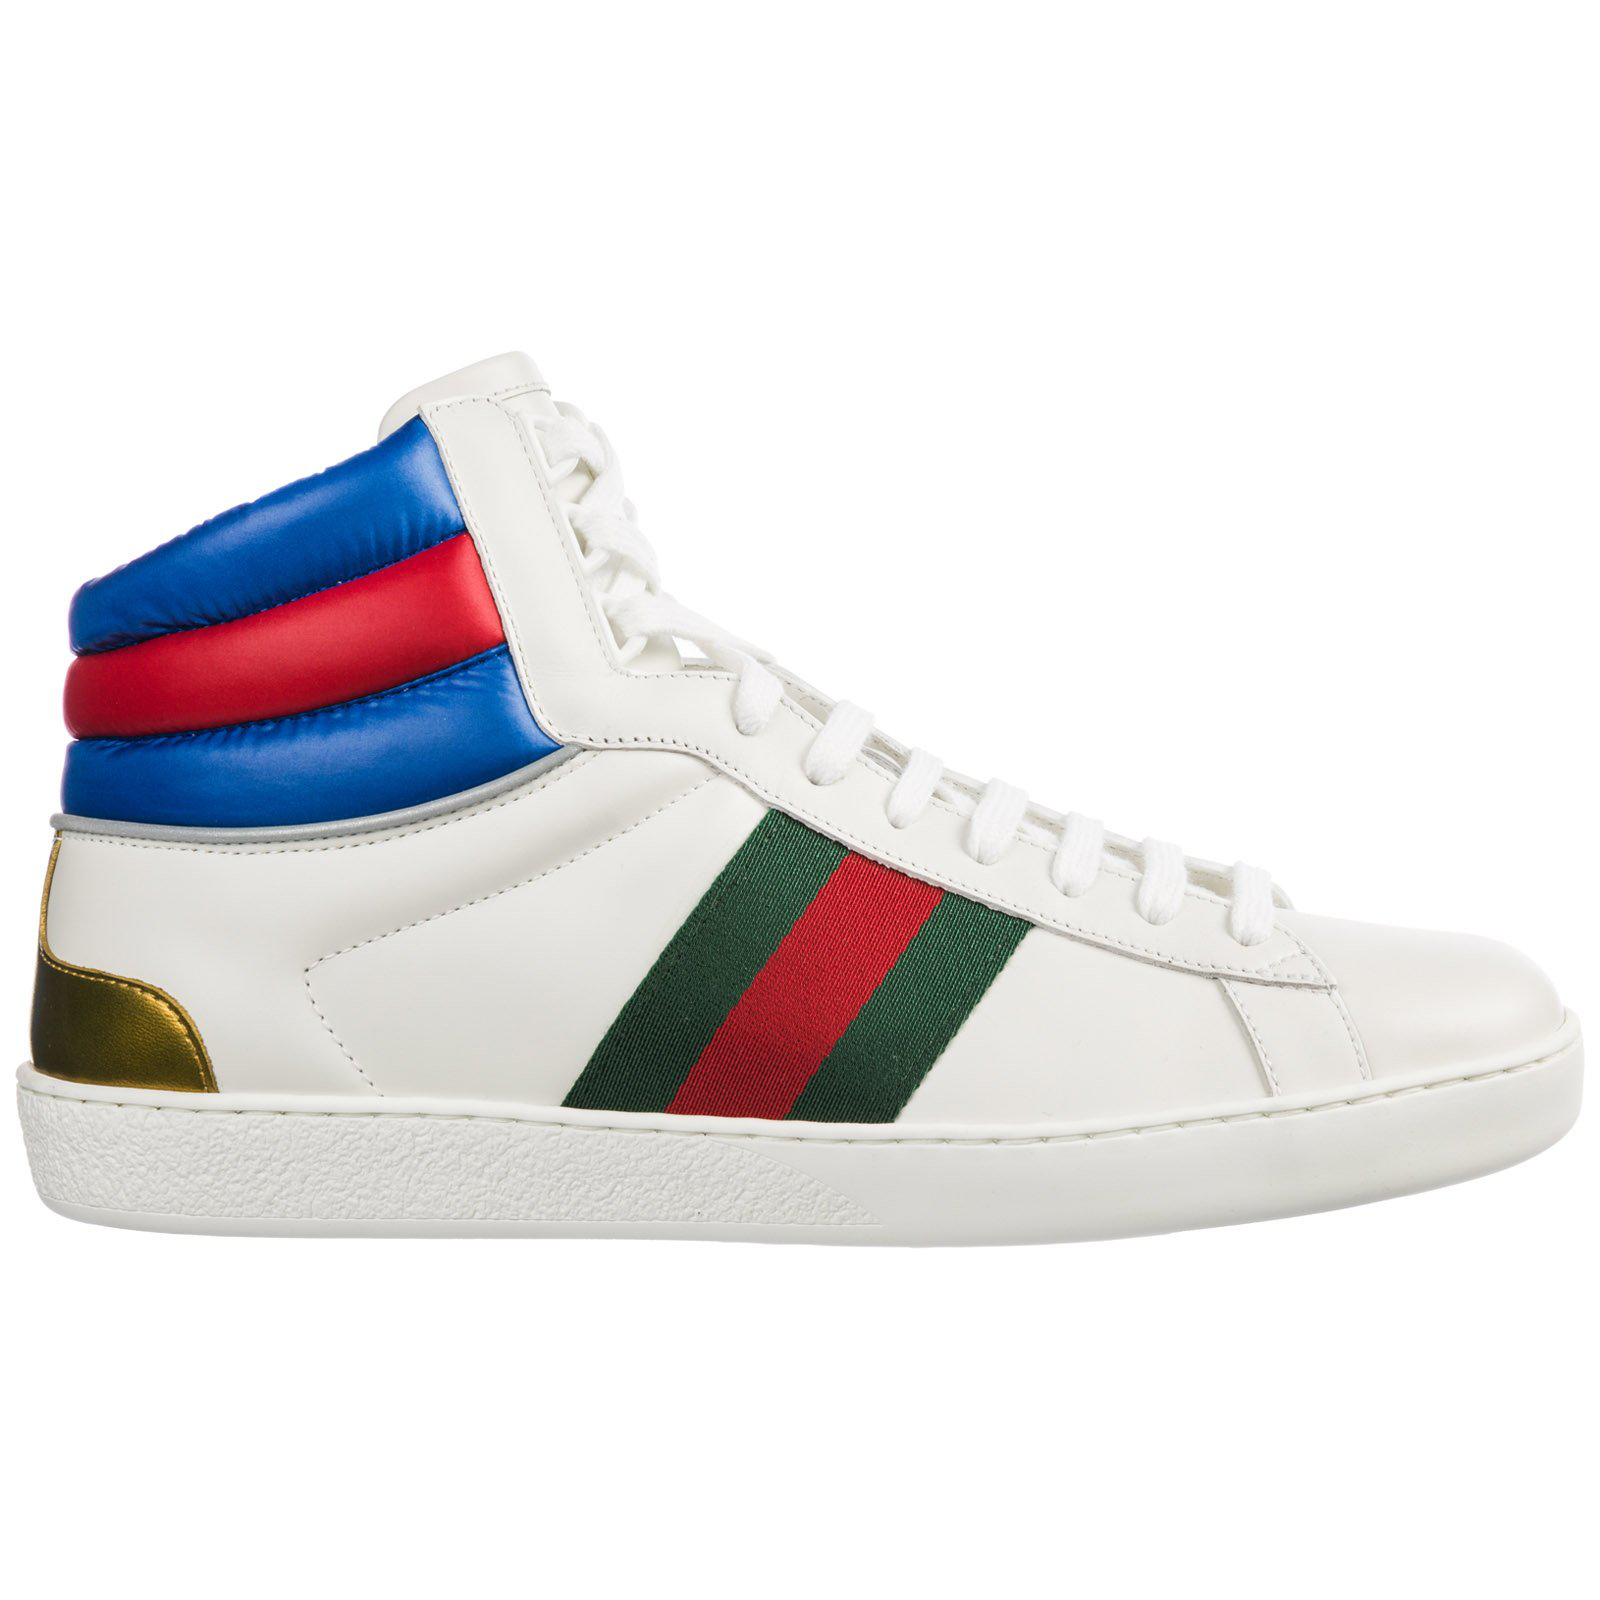 a6dbb75d25a Gucci Men s Shoes High Top Leather Trainers Sneakers Ace In White ...